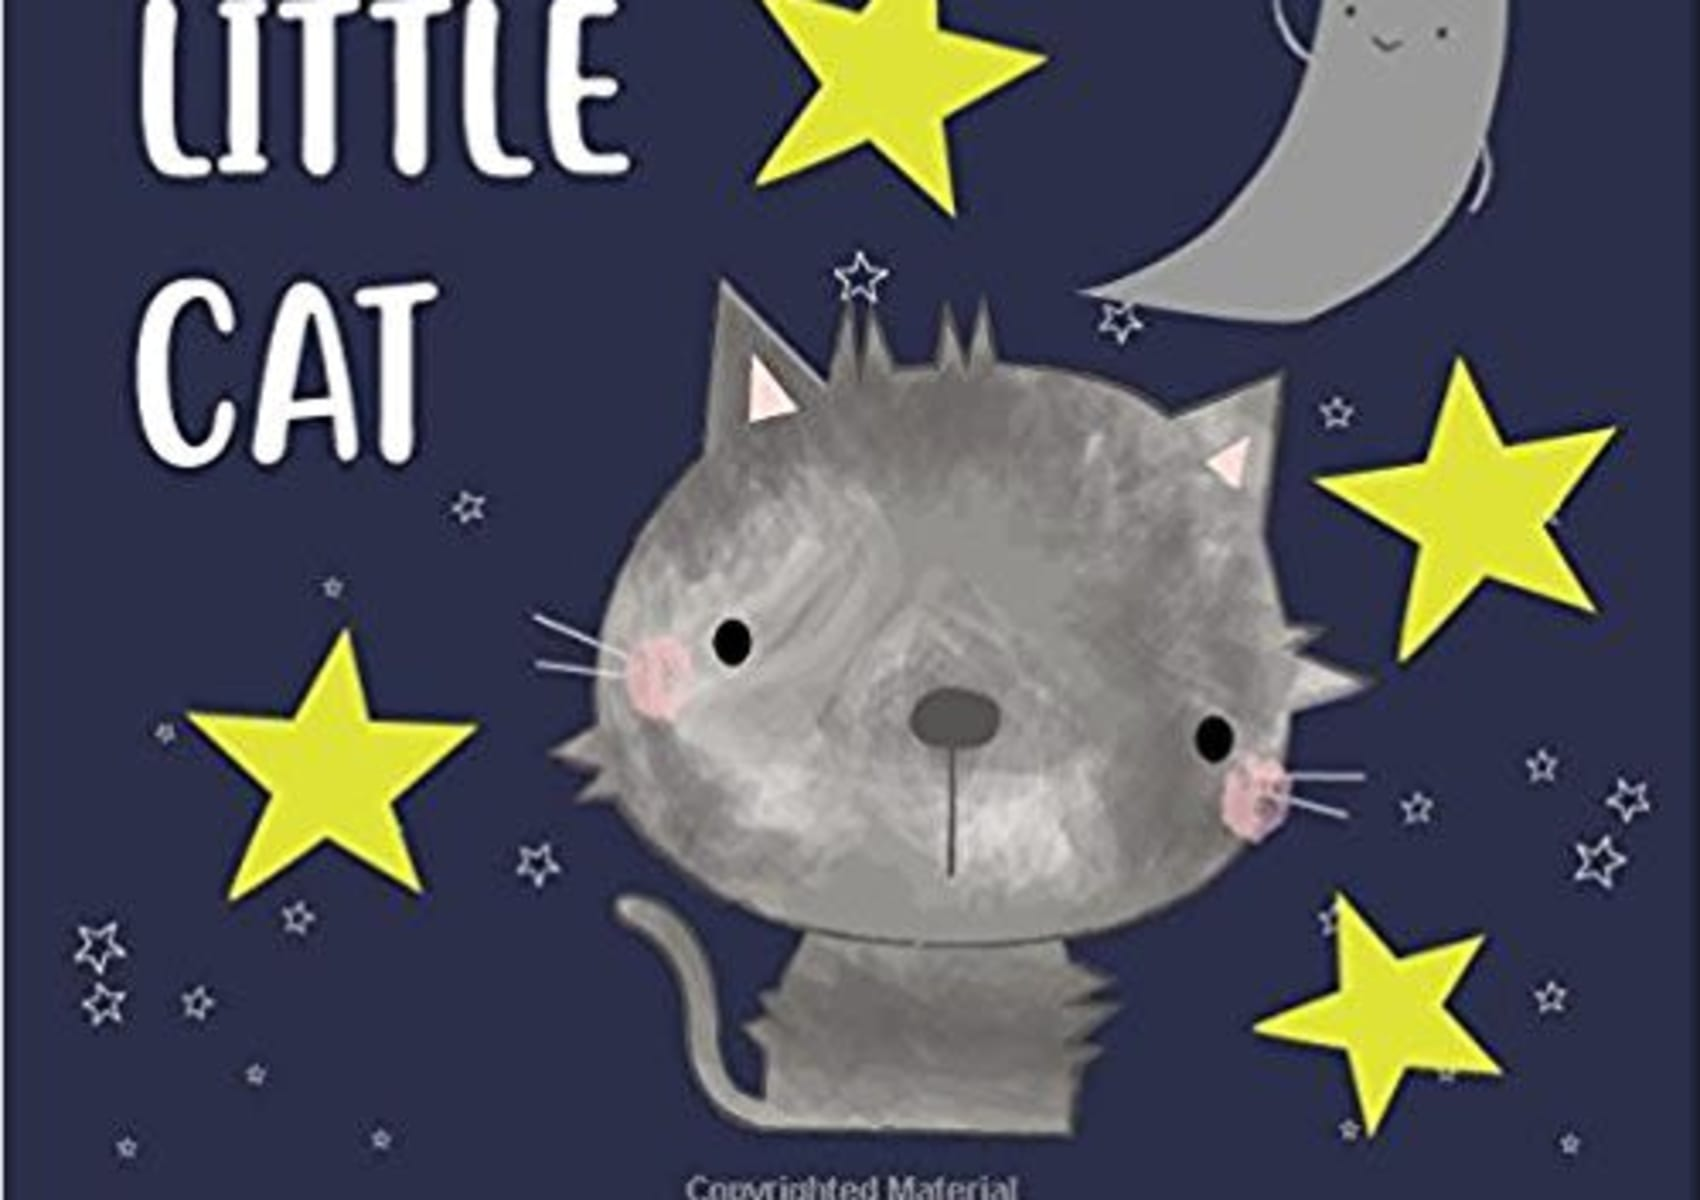 The Fluffy Little Cat Book